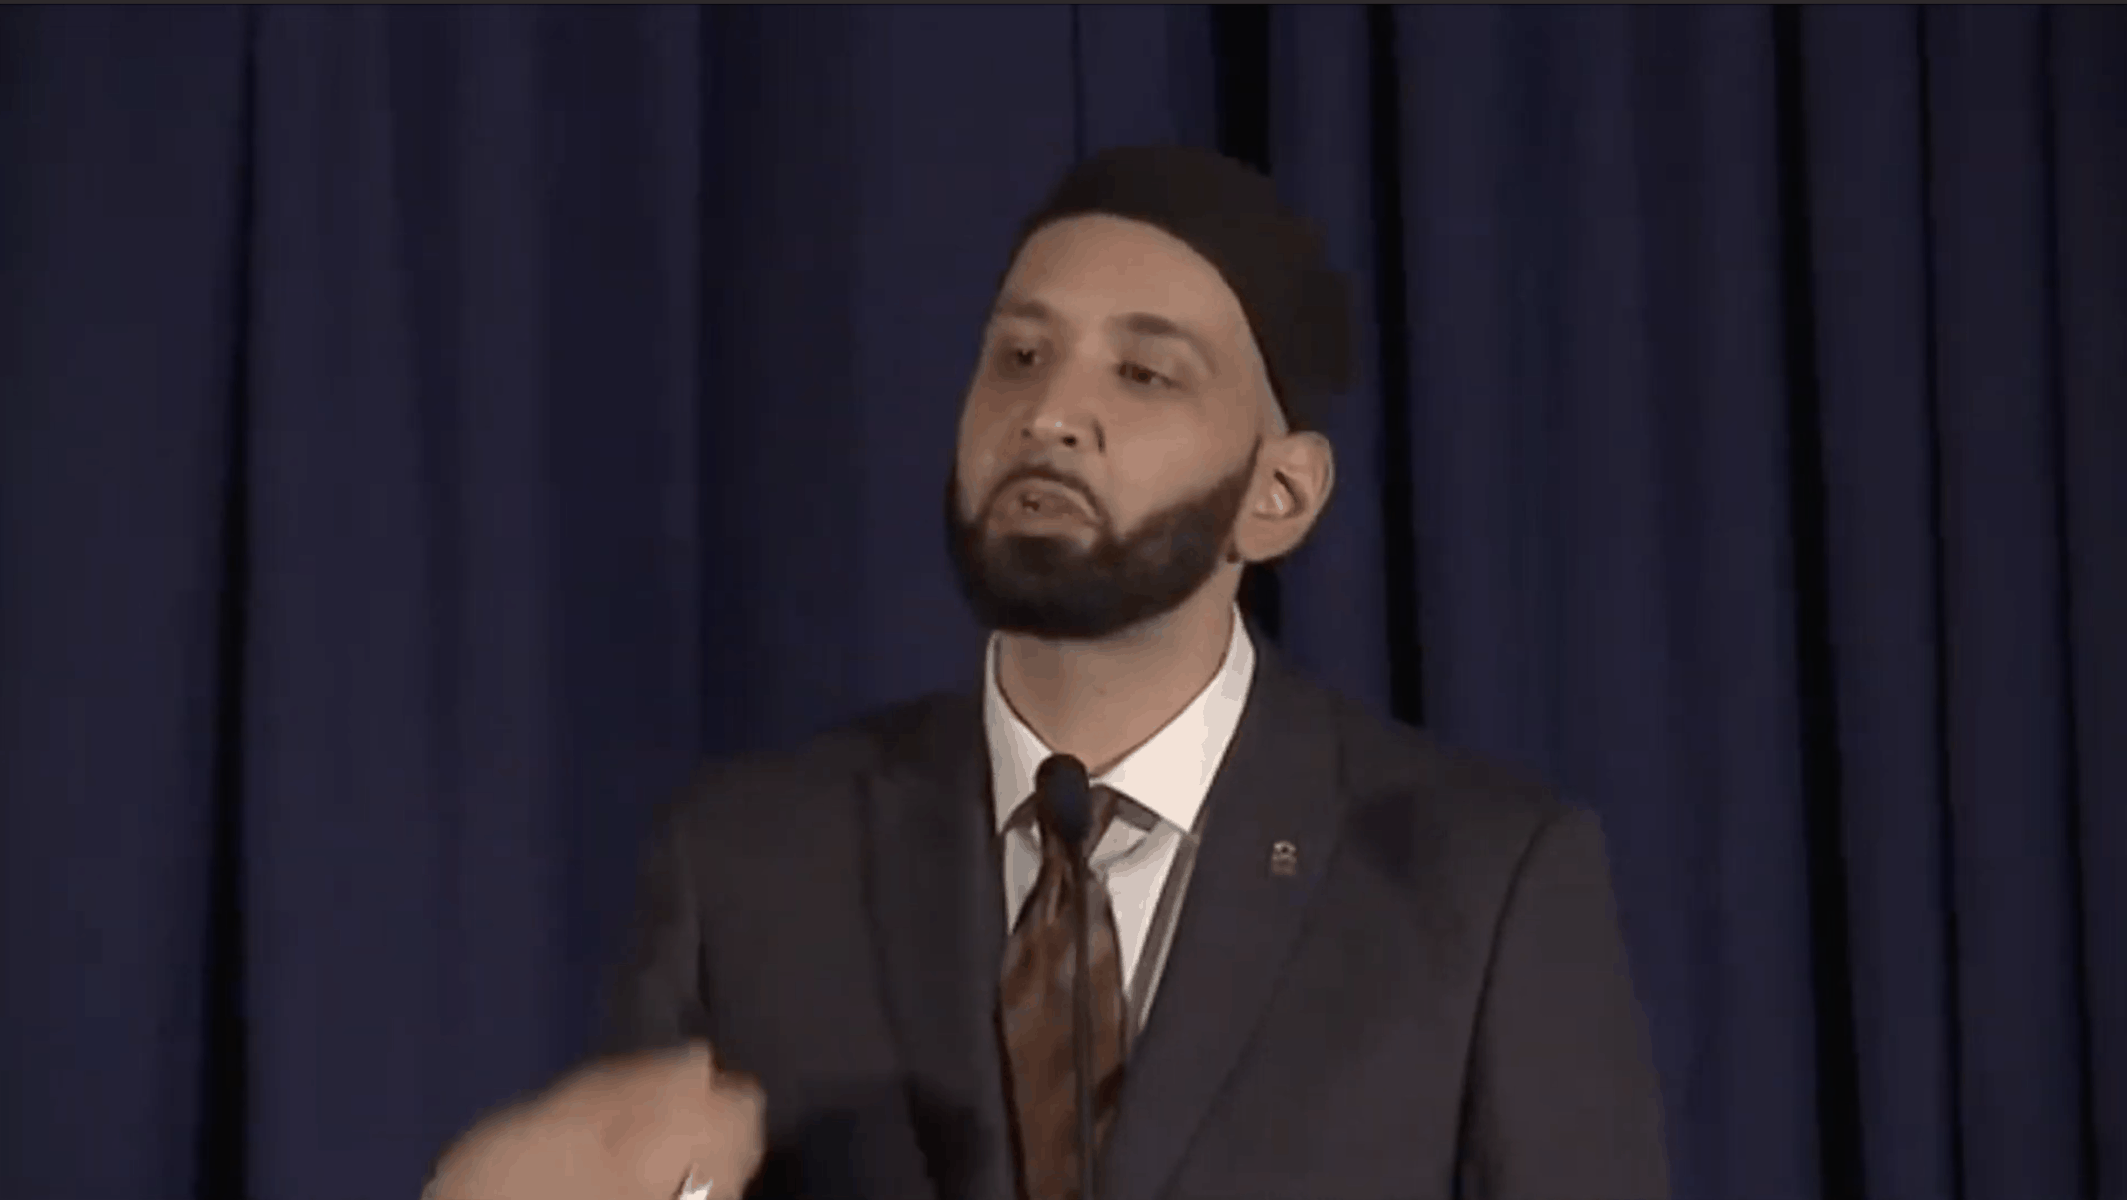 Omar Suleiman – Torch Bearers: Streamlining the Sunnah